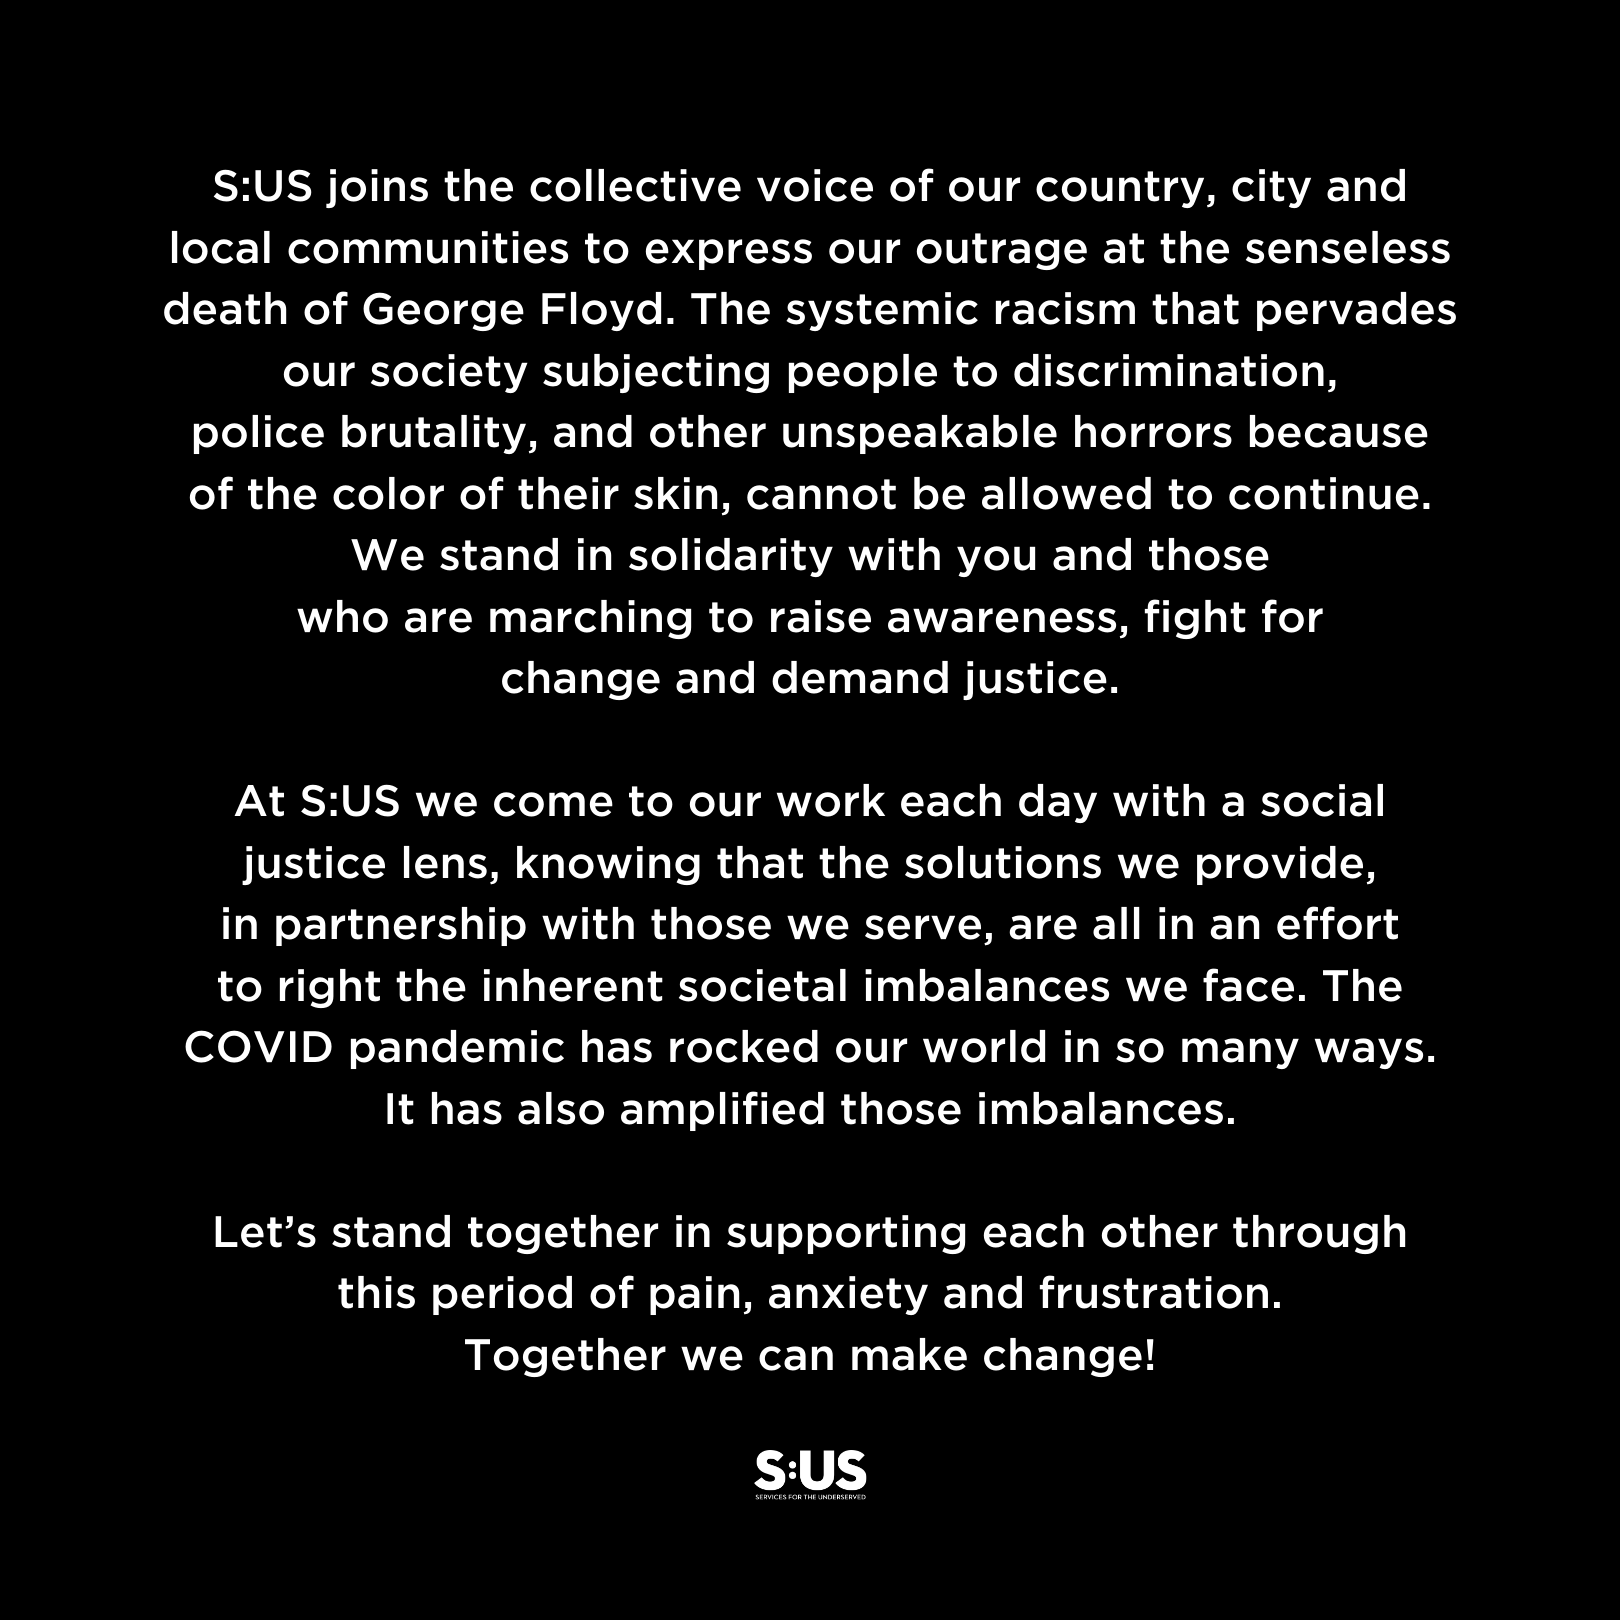 We stand in solidarity